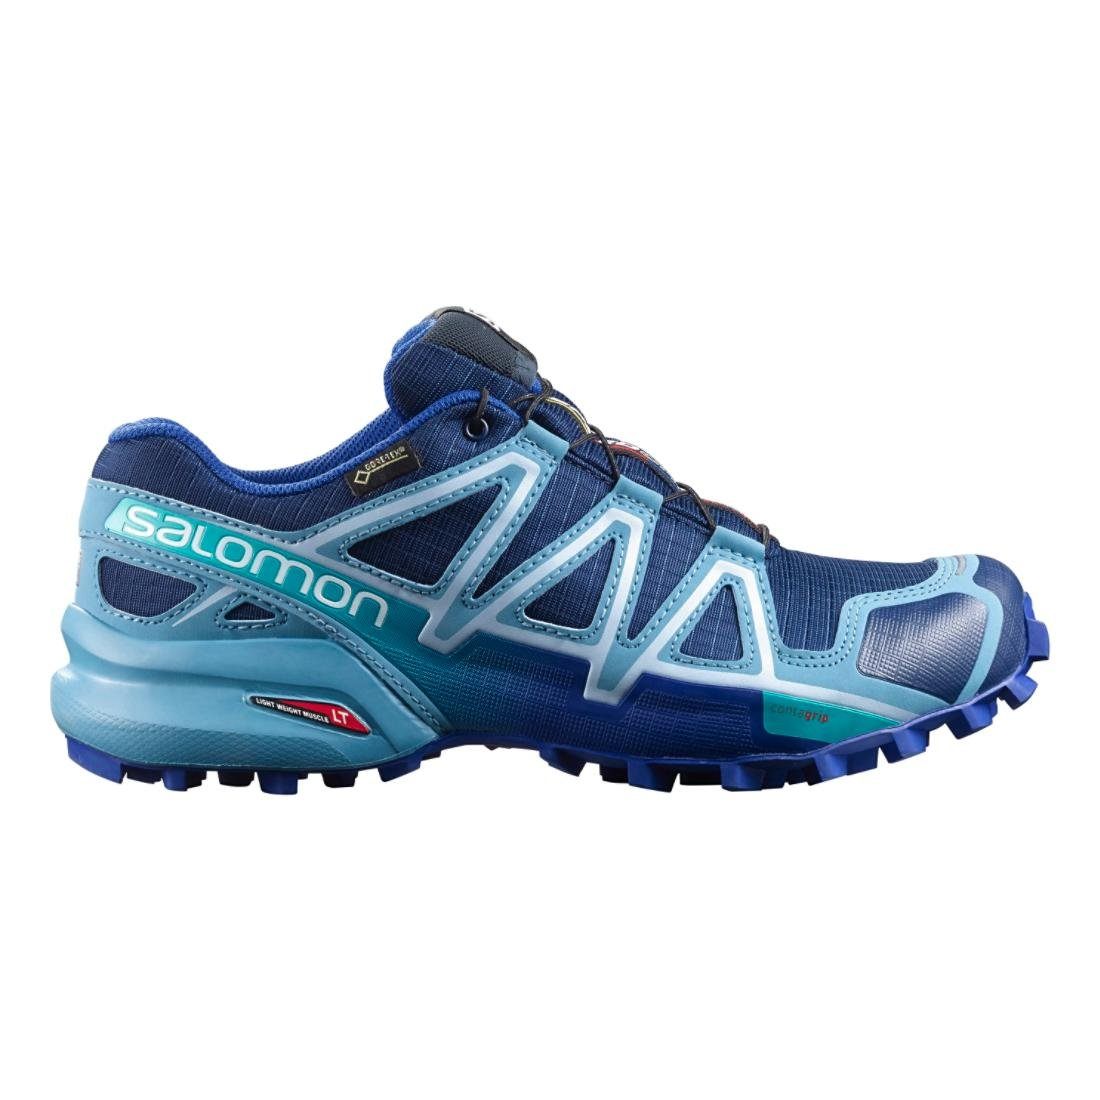 Salomon Women's Speedcross 4 GTX W Trail Running Shoe B017SQV6WE 11 B(M) US|Blue Depth/Blue Gum/Blue Yonder